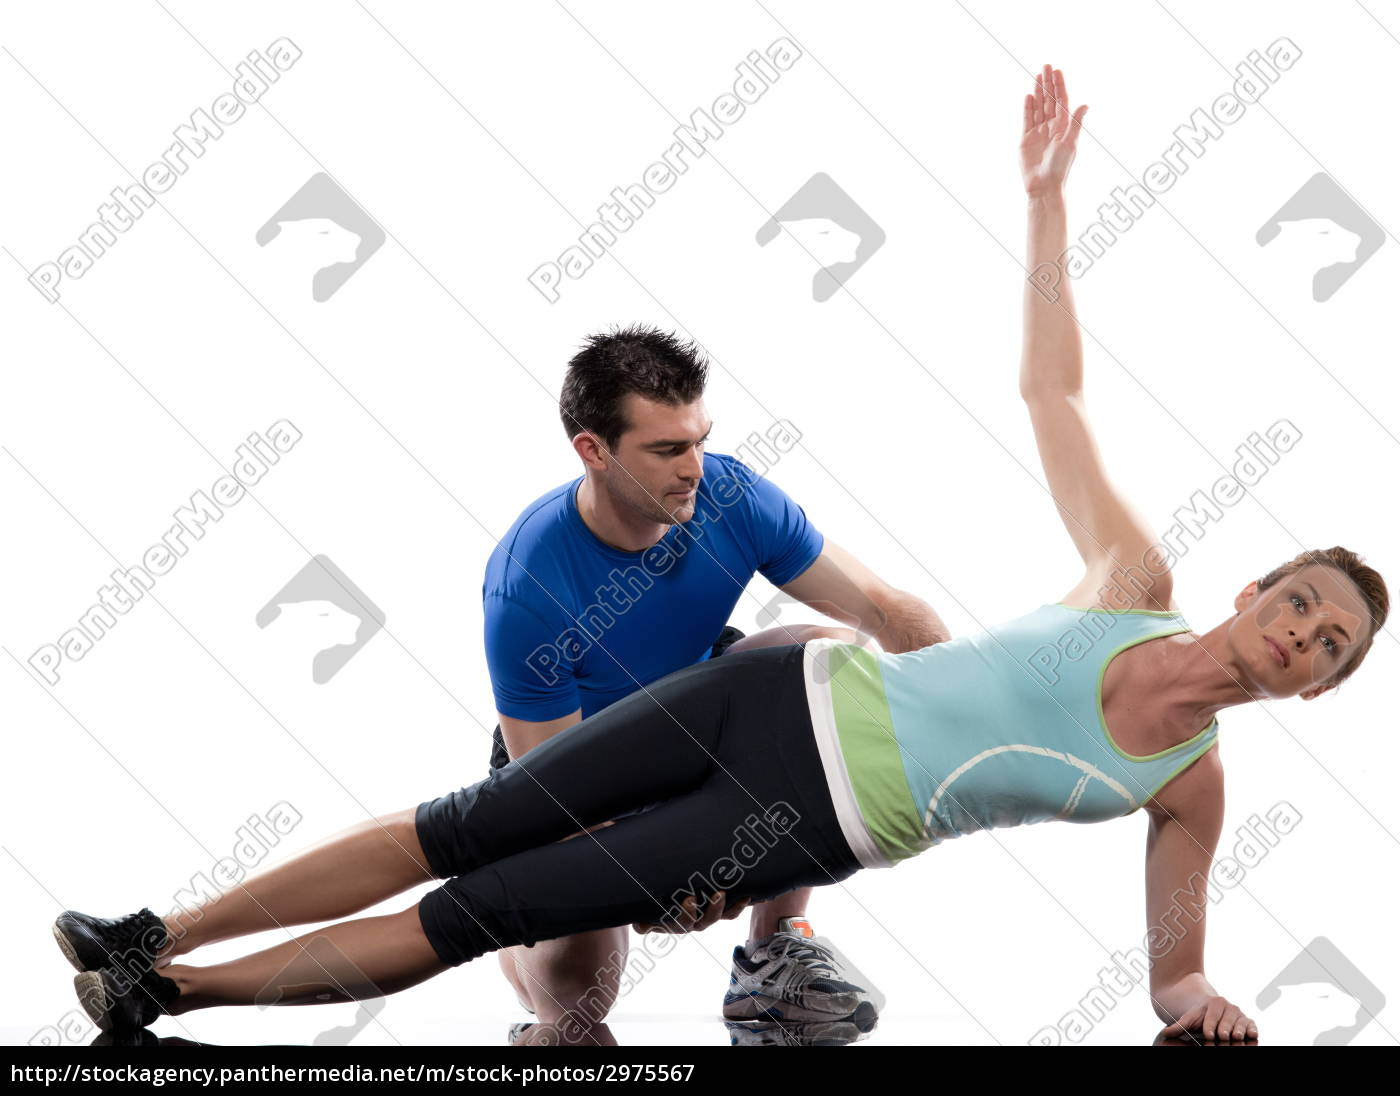 stretching, workout, posture - 2975567